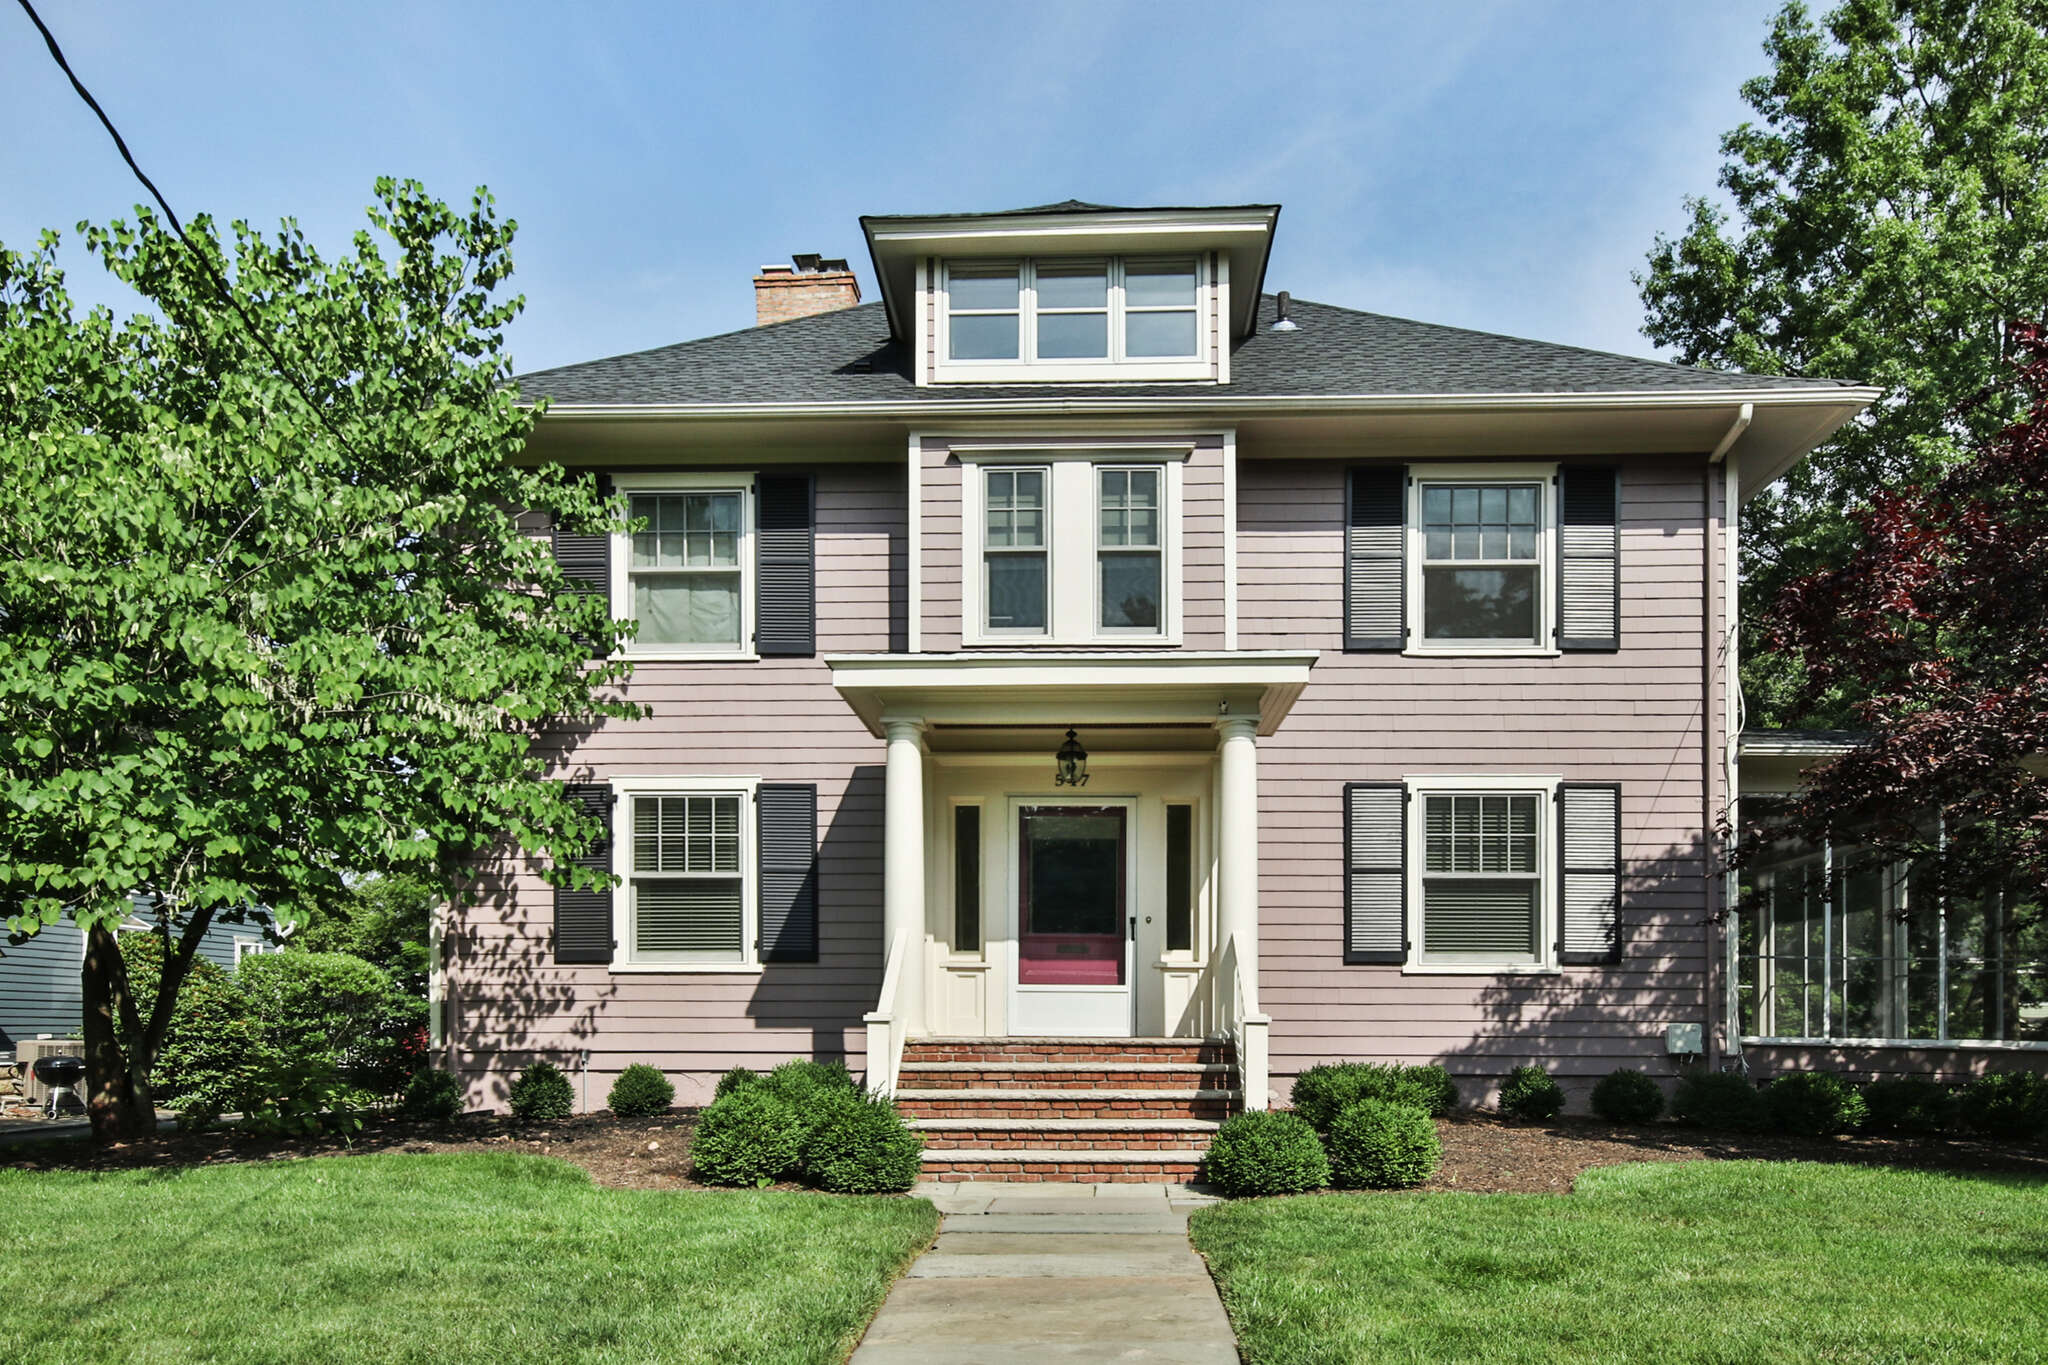 Single Family for Sale at 547 St. Marks Avenue Westfield, New Jersey 07090 United States